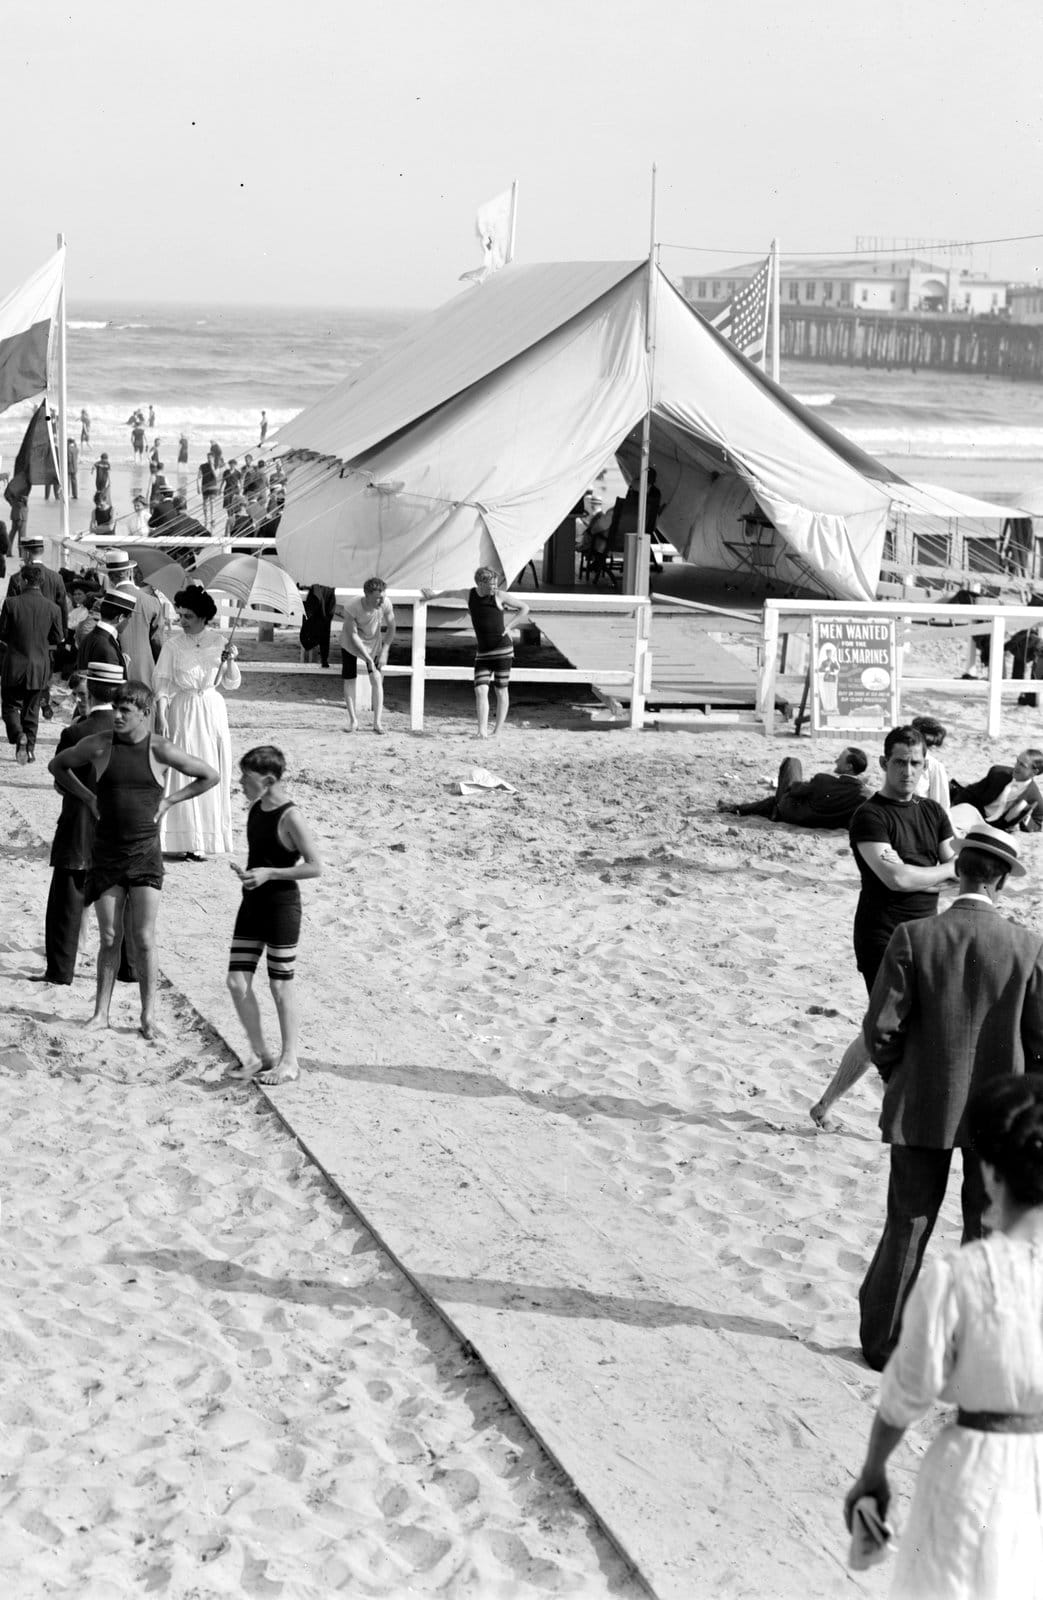 Vintage Jersey Shore beach scenes from the early 1900s (4)